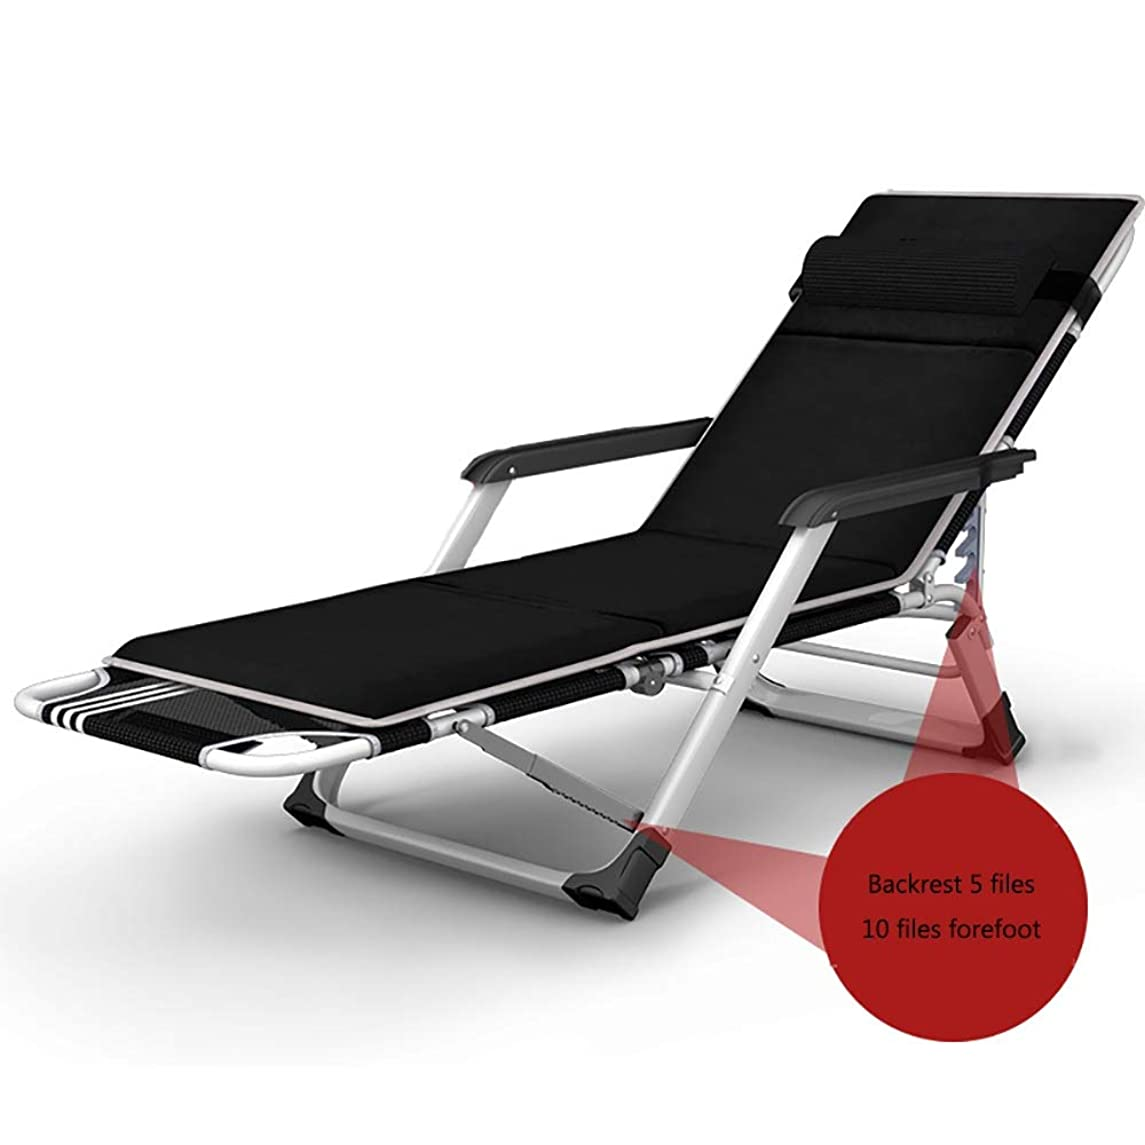 QYJ-Chairs Lounges Reclining Garden Sun Lounger with Headrest, Office Lunch Break Siesta Bed, Portable Outdoor Folding Chair Beach Holiday Camping, Load 200kg (Color : B)